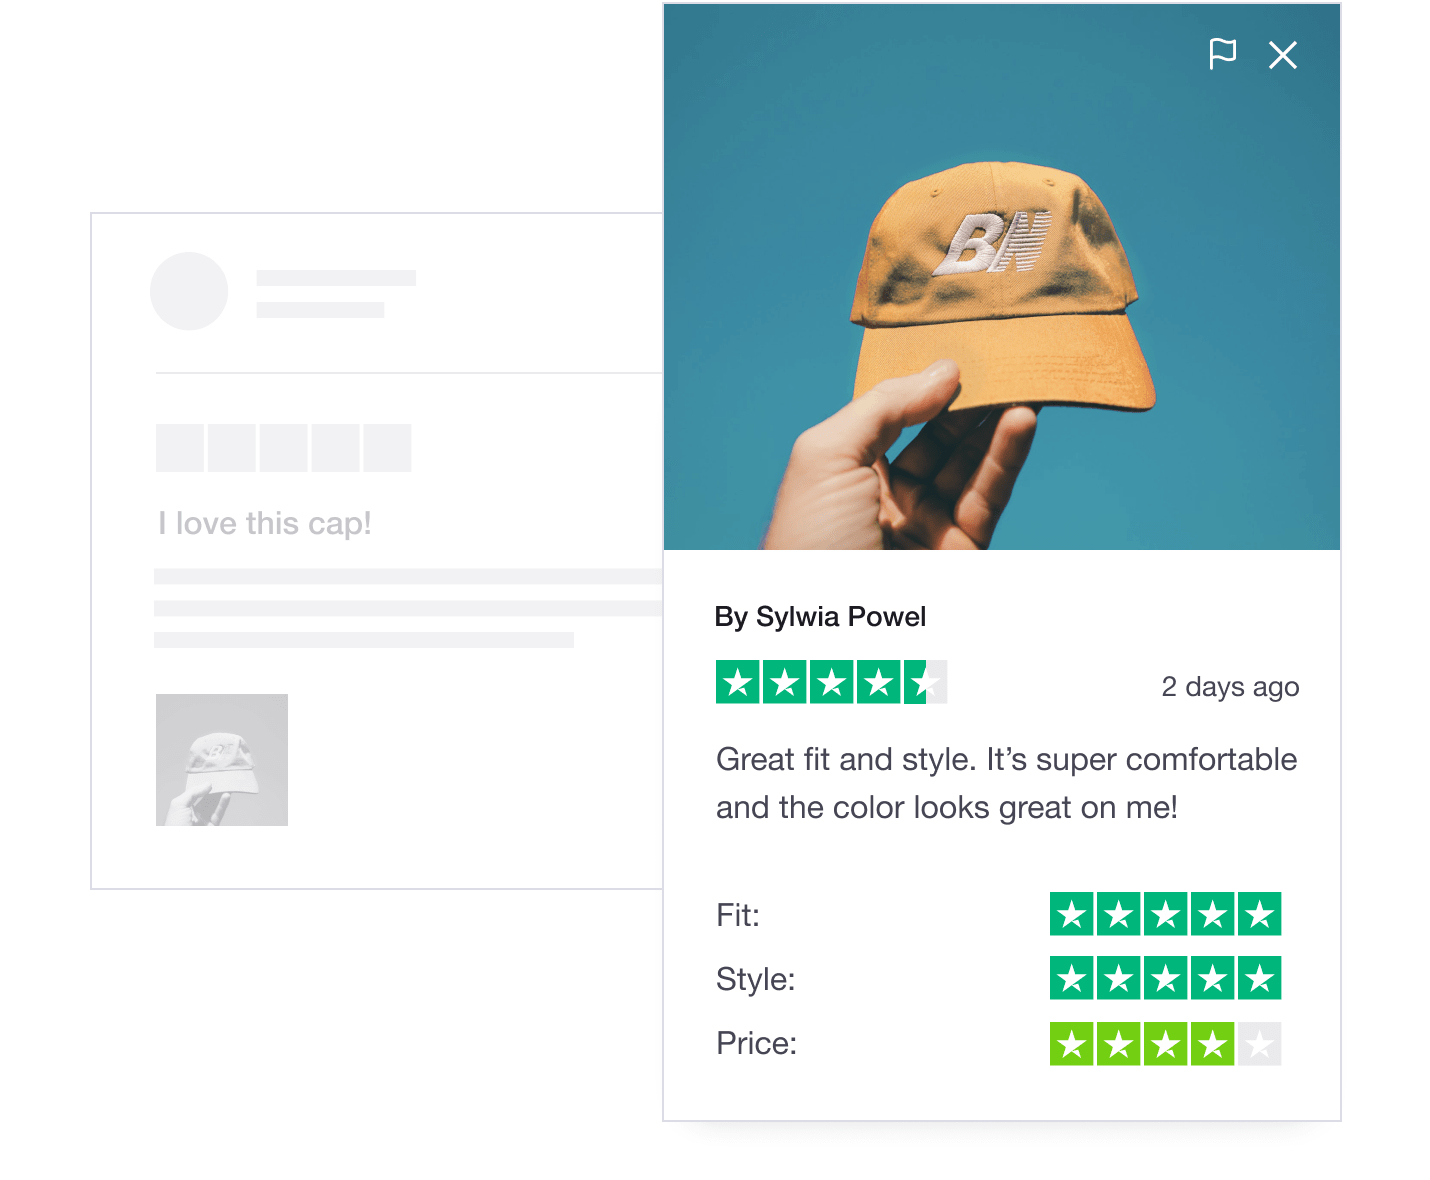 Trustpilot product review featuring a customer photo